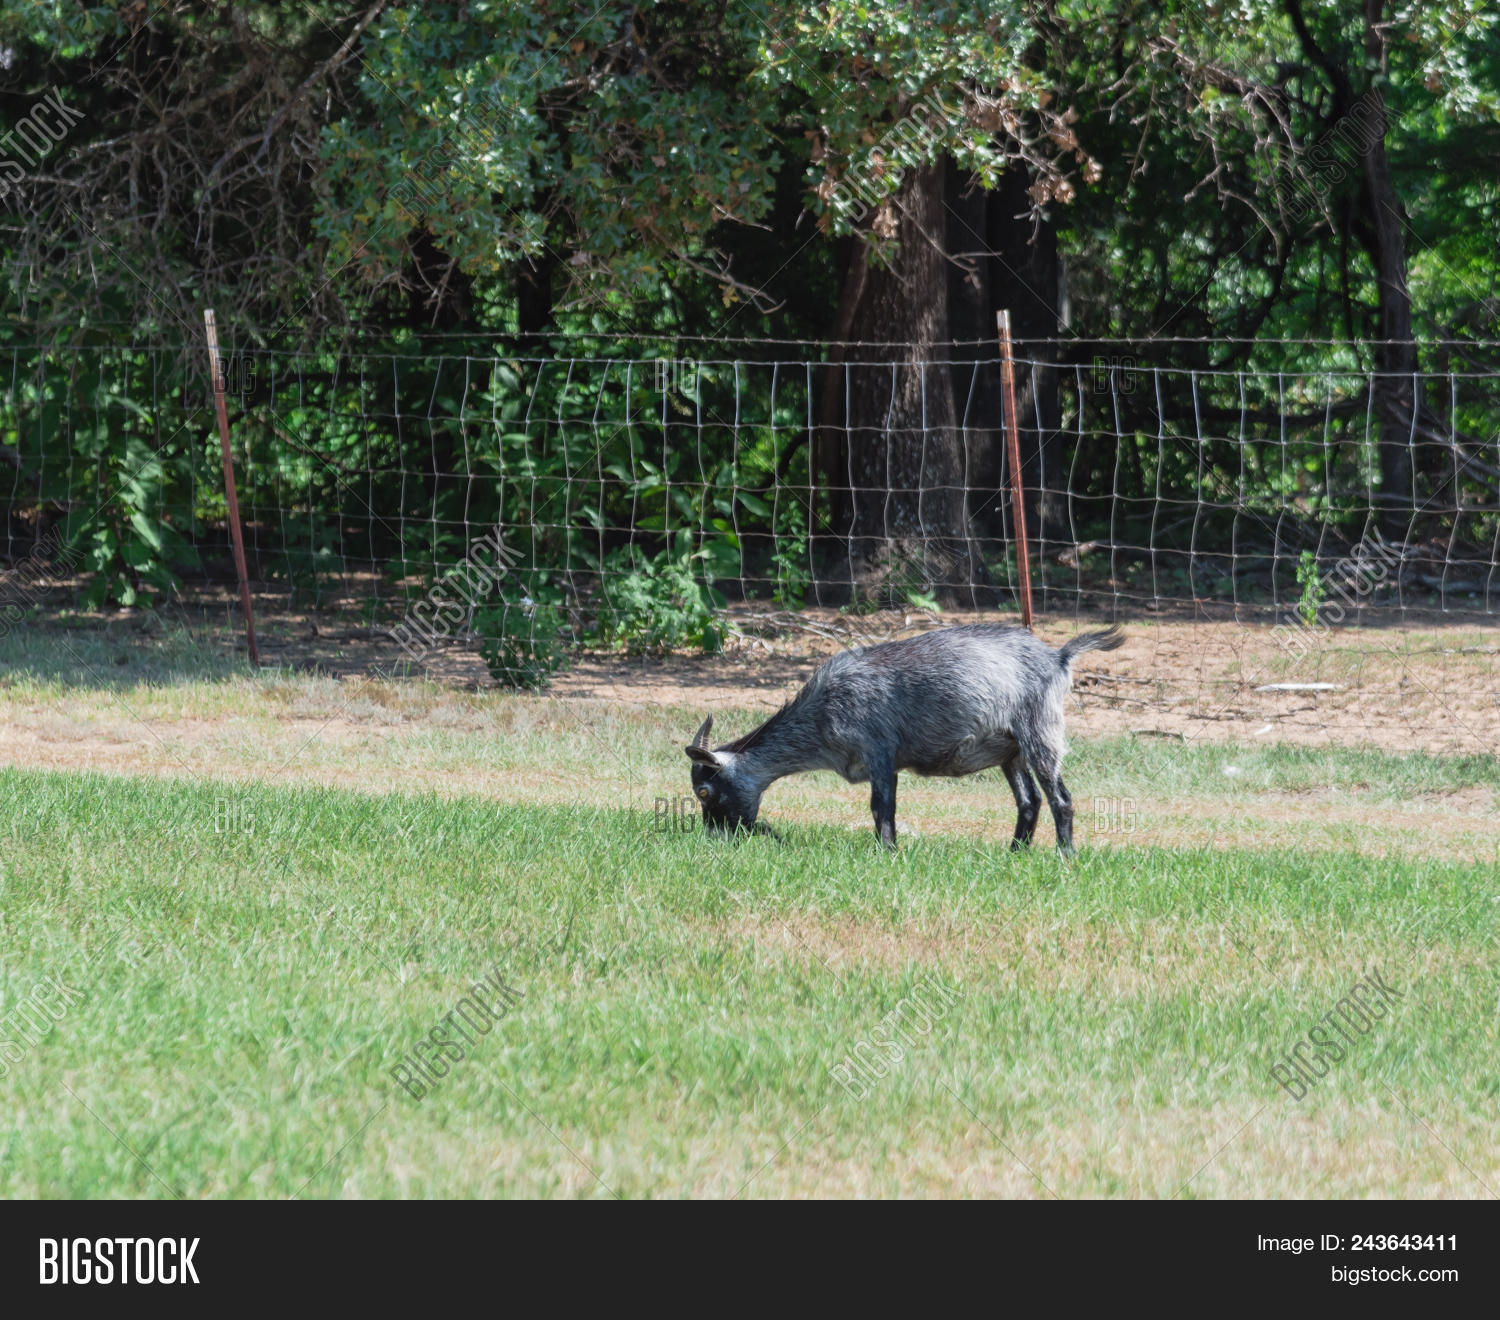 Goat Grazing Grass Image & Photo (Free Trial) | Bigstock